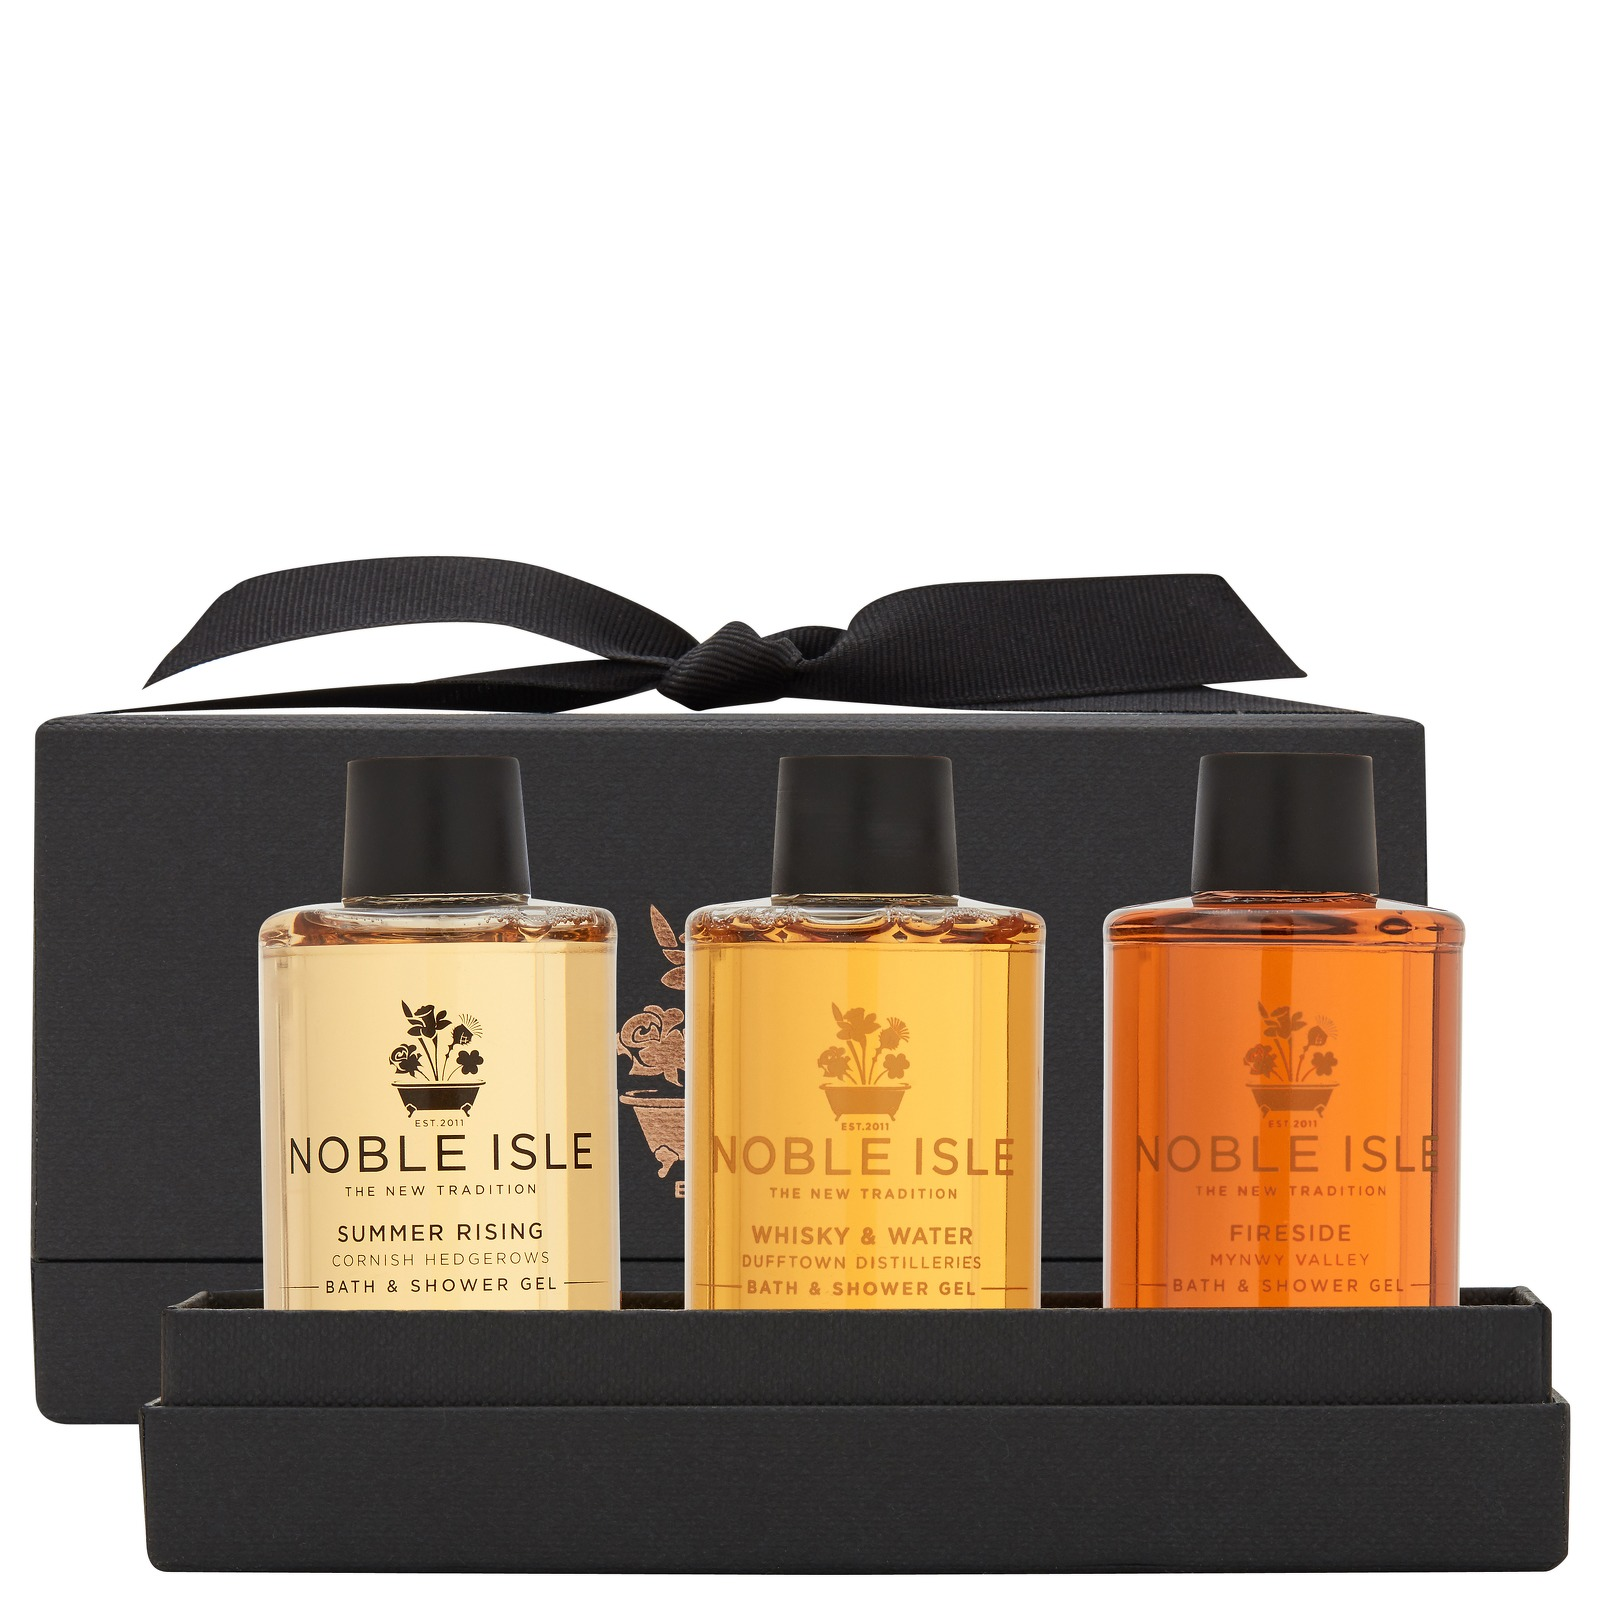 Noble Isle Gift Sets Warm & Spicy Bath & Shower Trio 3 x 75ml